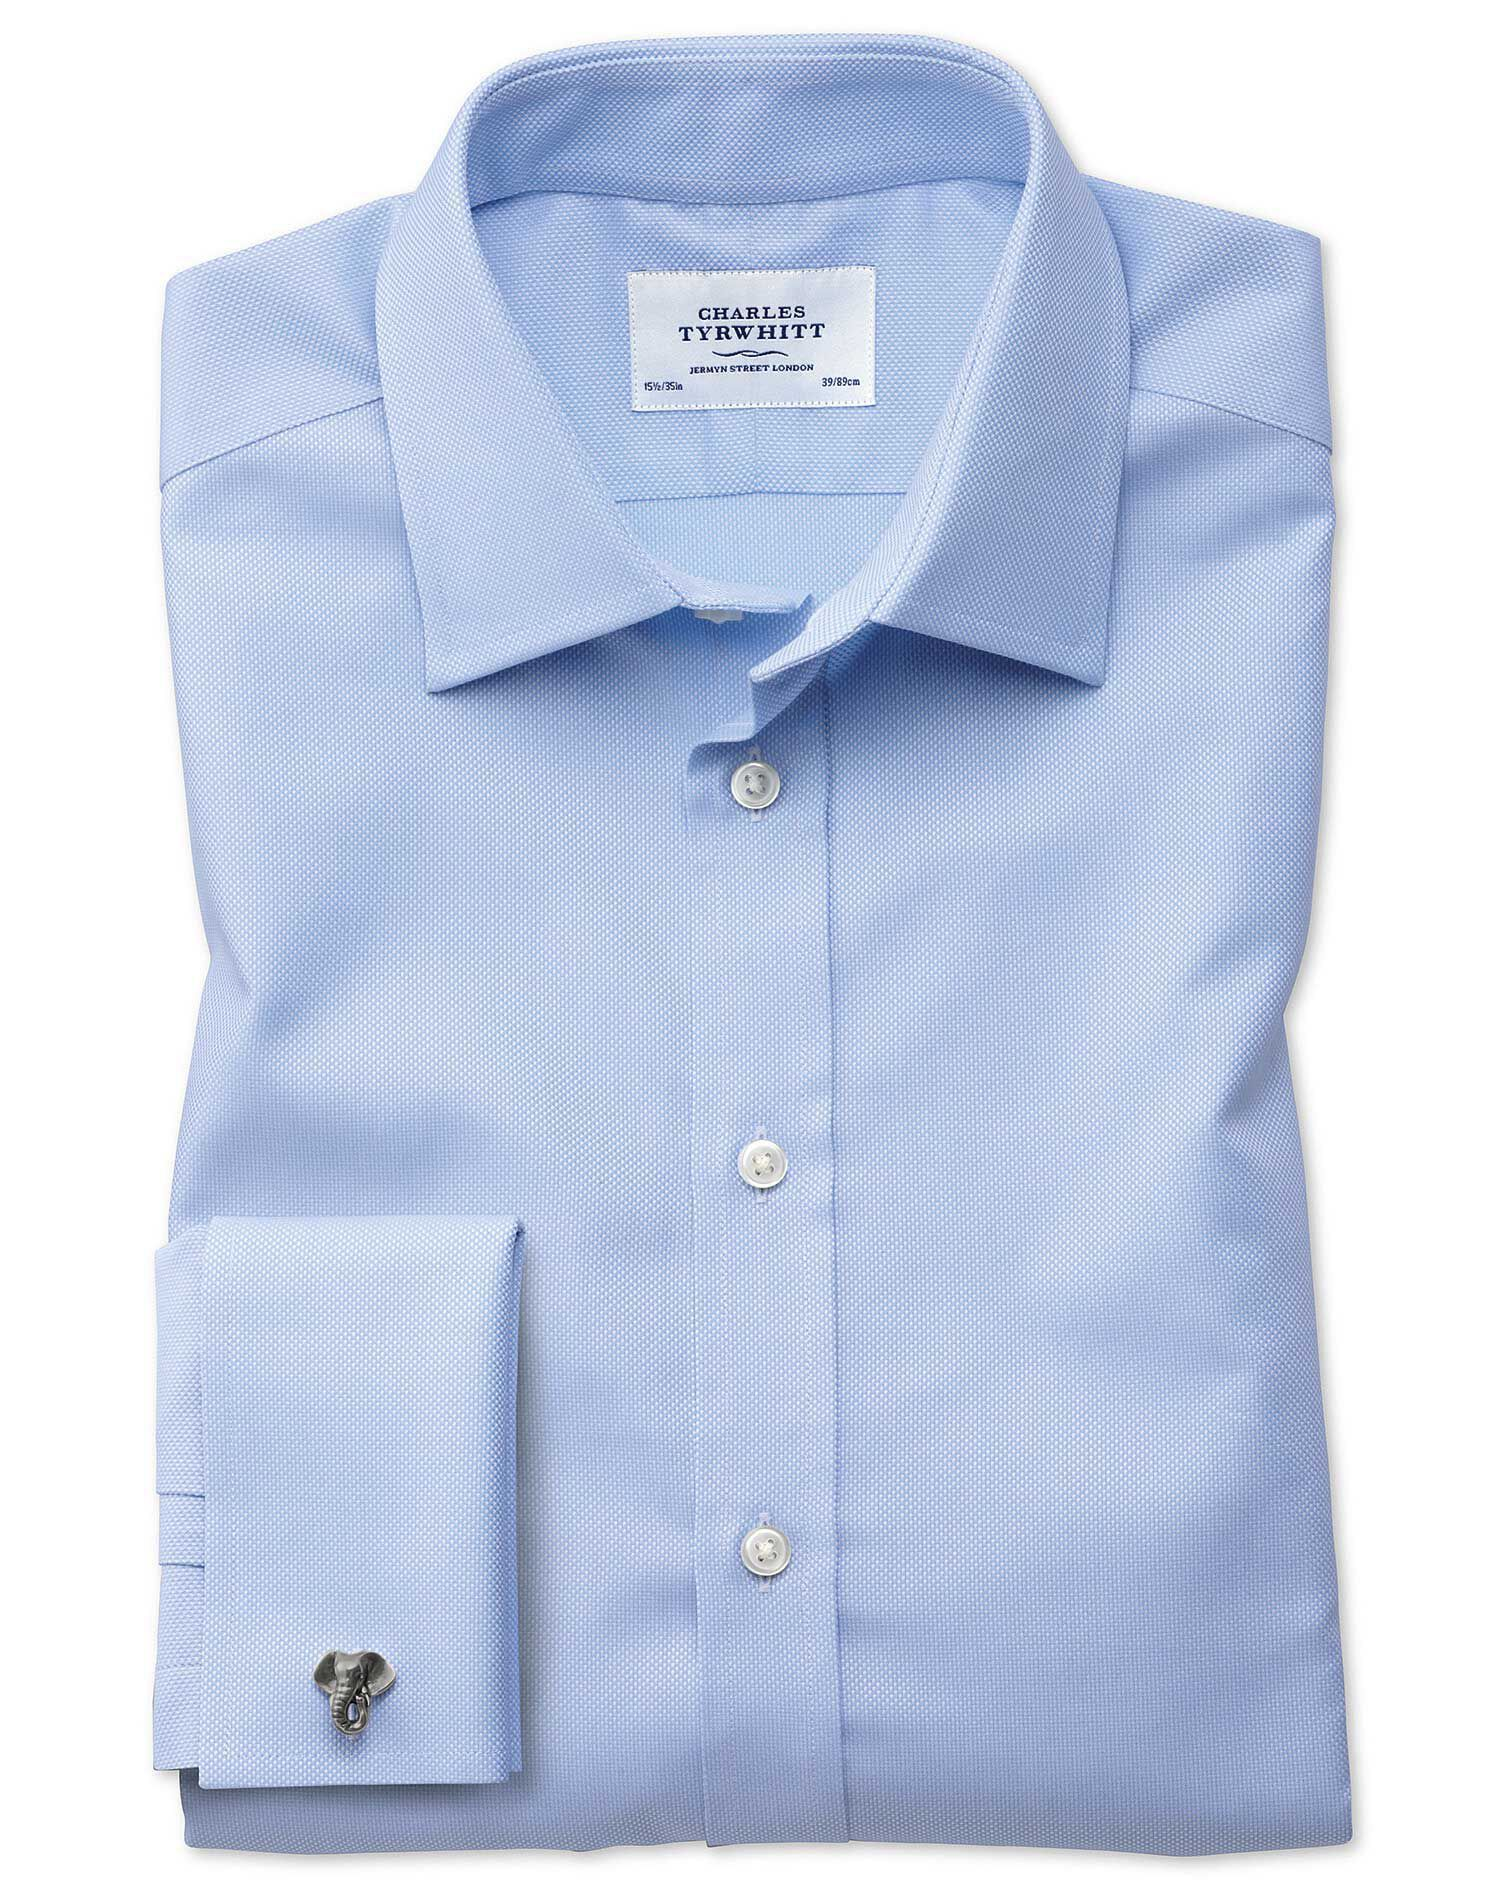 Extra Slim Fit Egyptian Cotton Royal Oxford Sky Blue Formal Shirt Single Cuff Size 14.5/32 by Charle